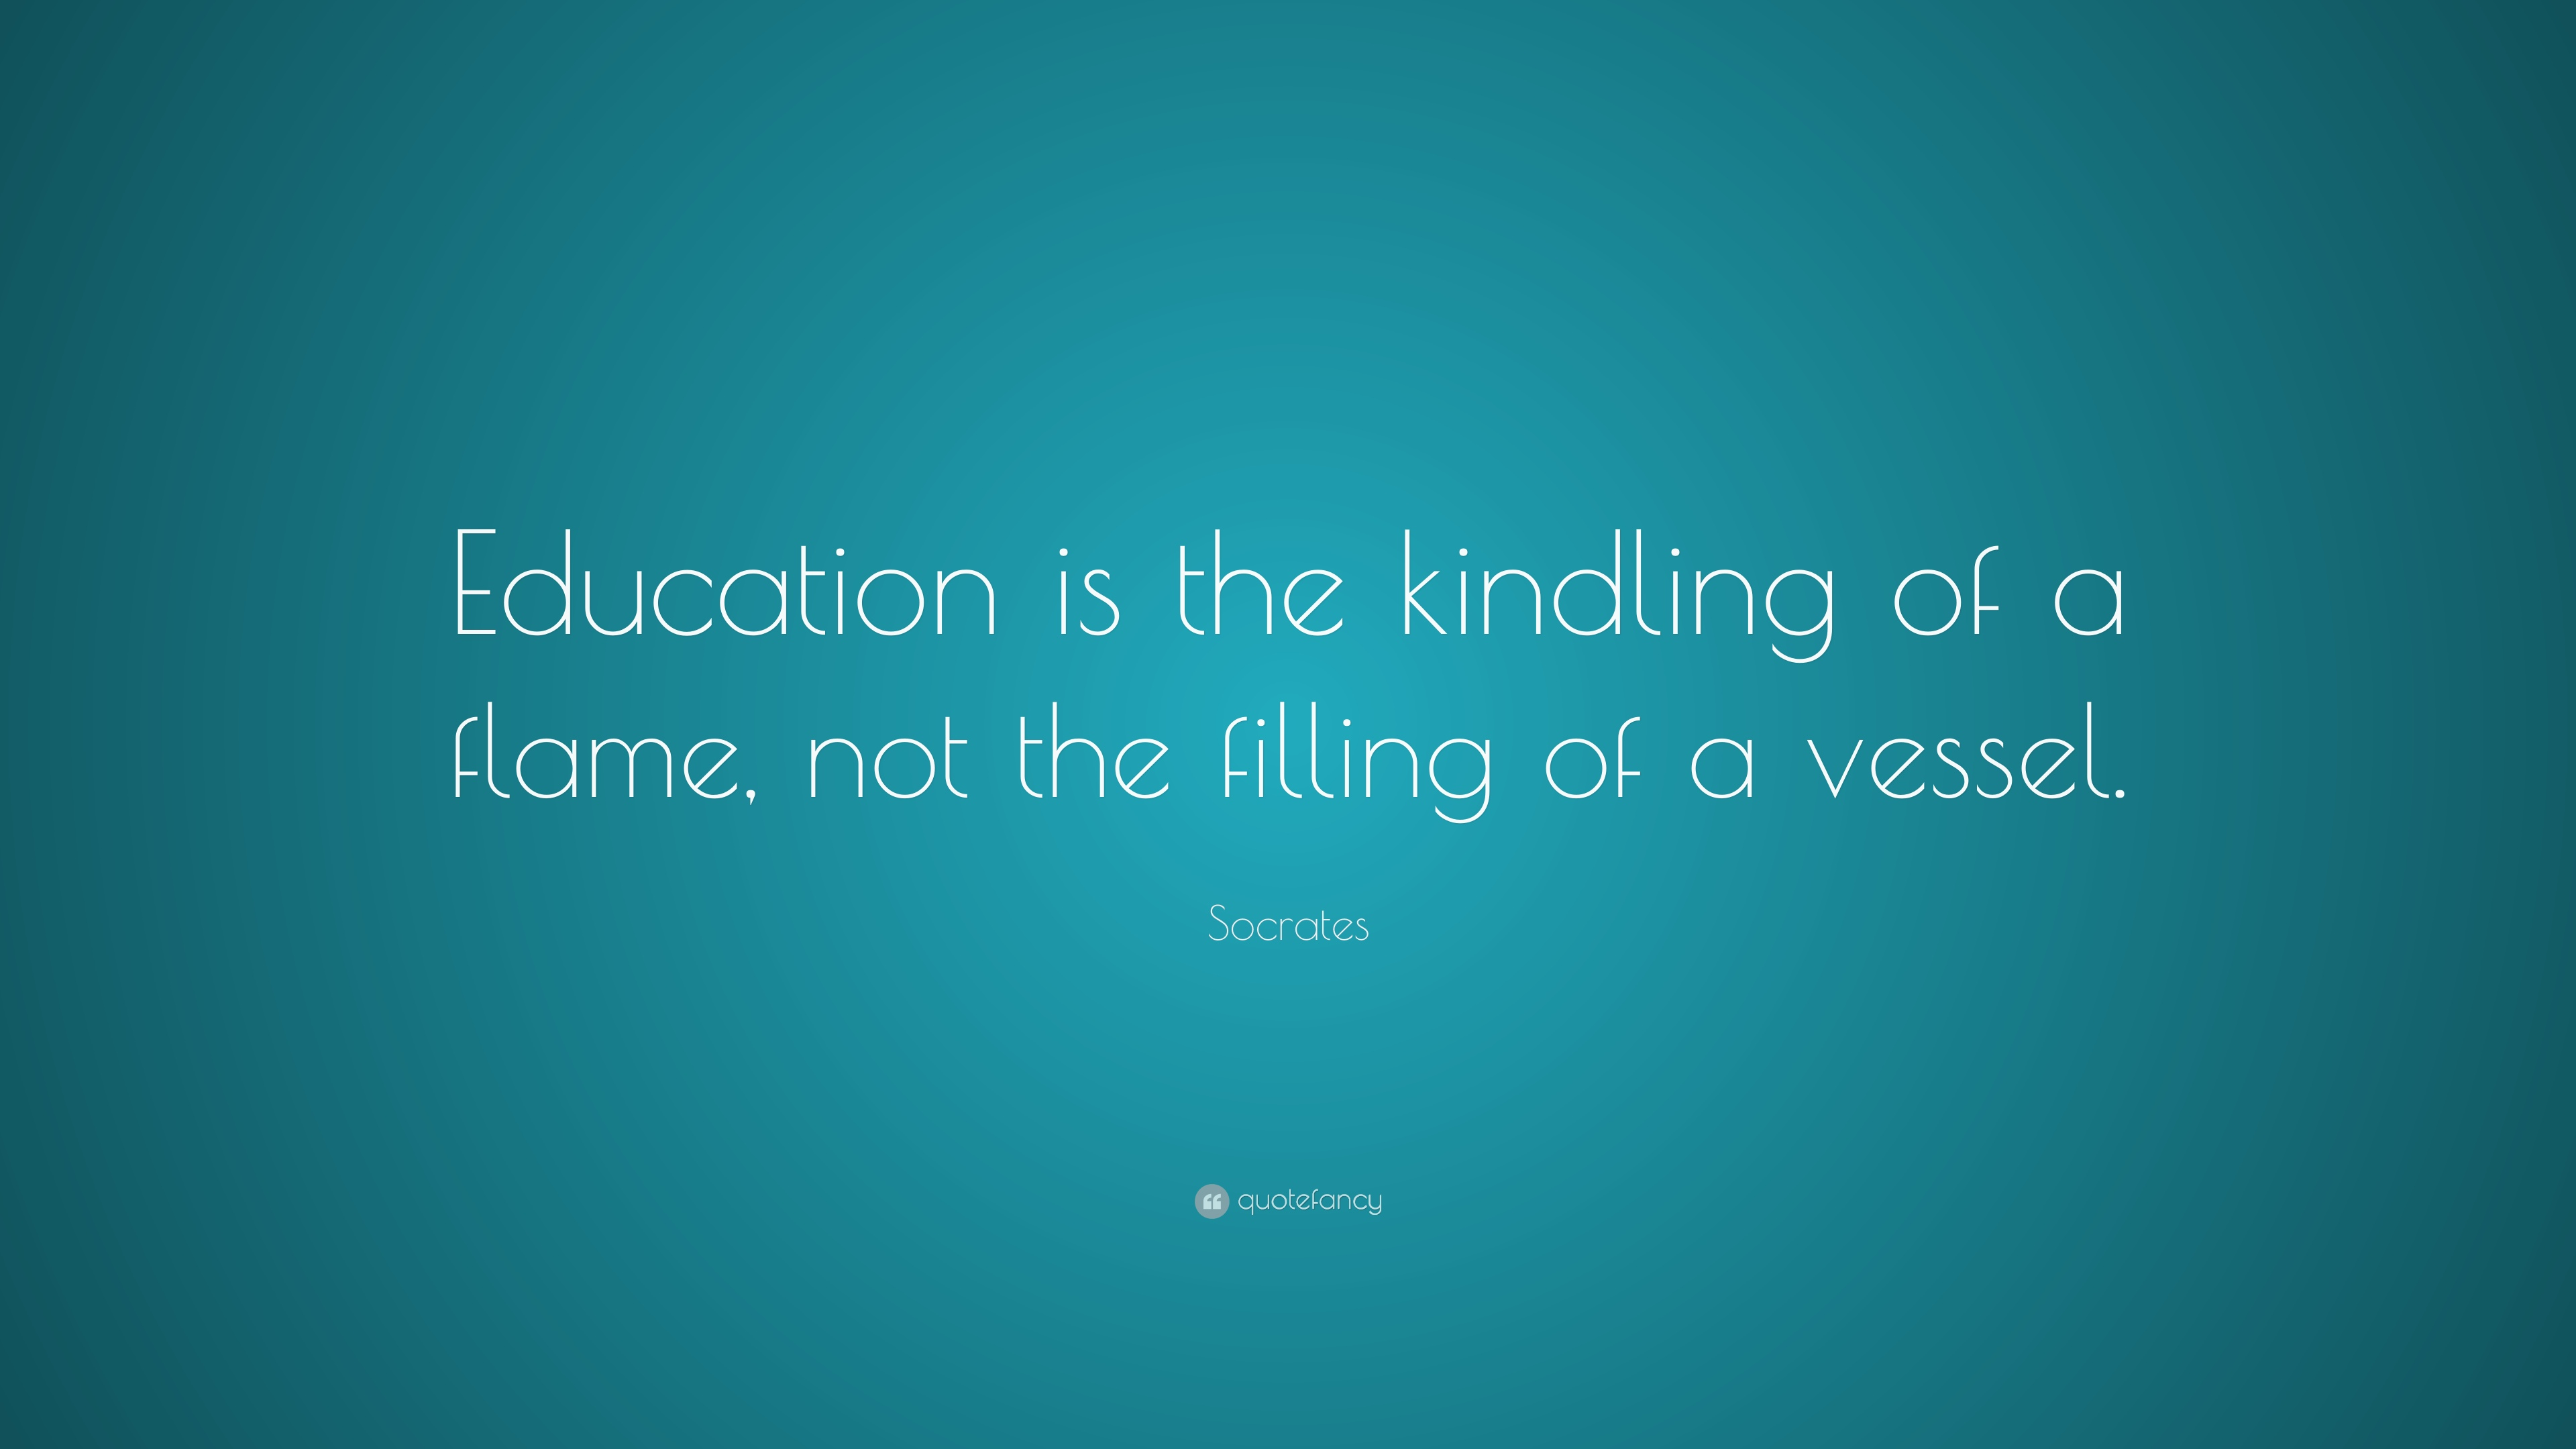 education quotes wallpapers - photo #13